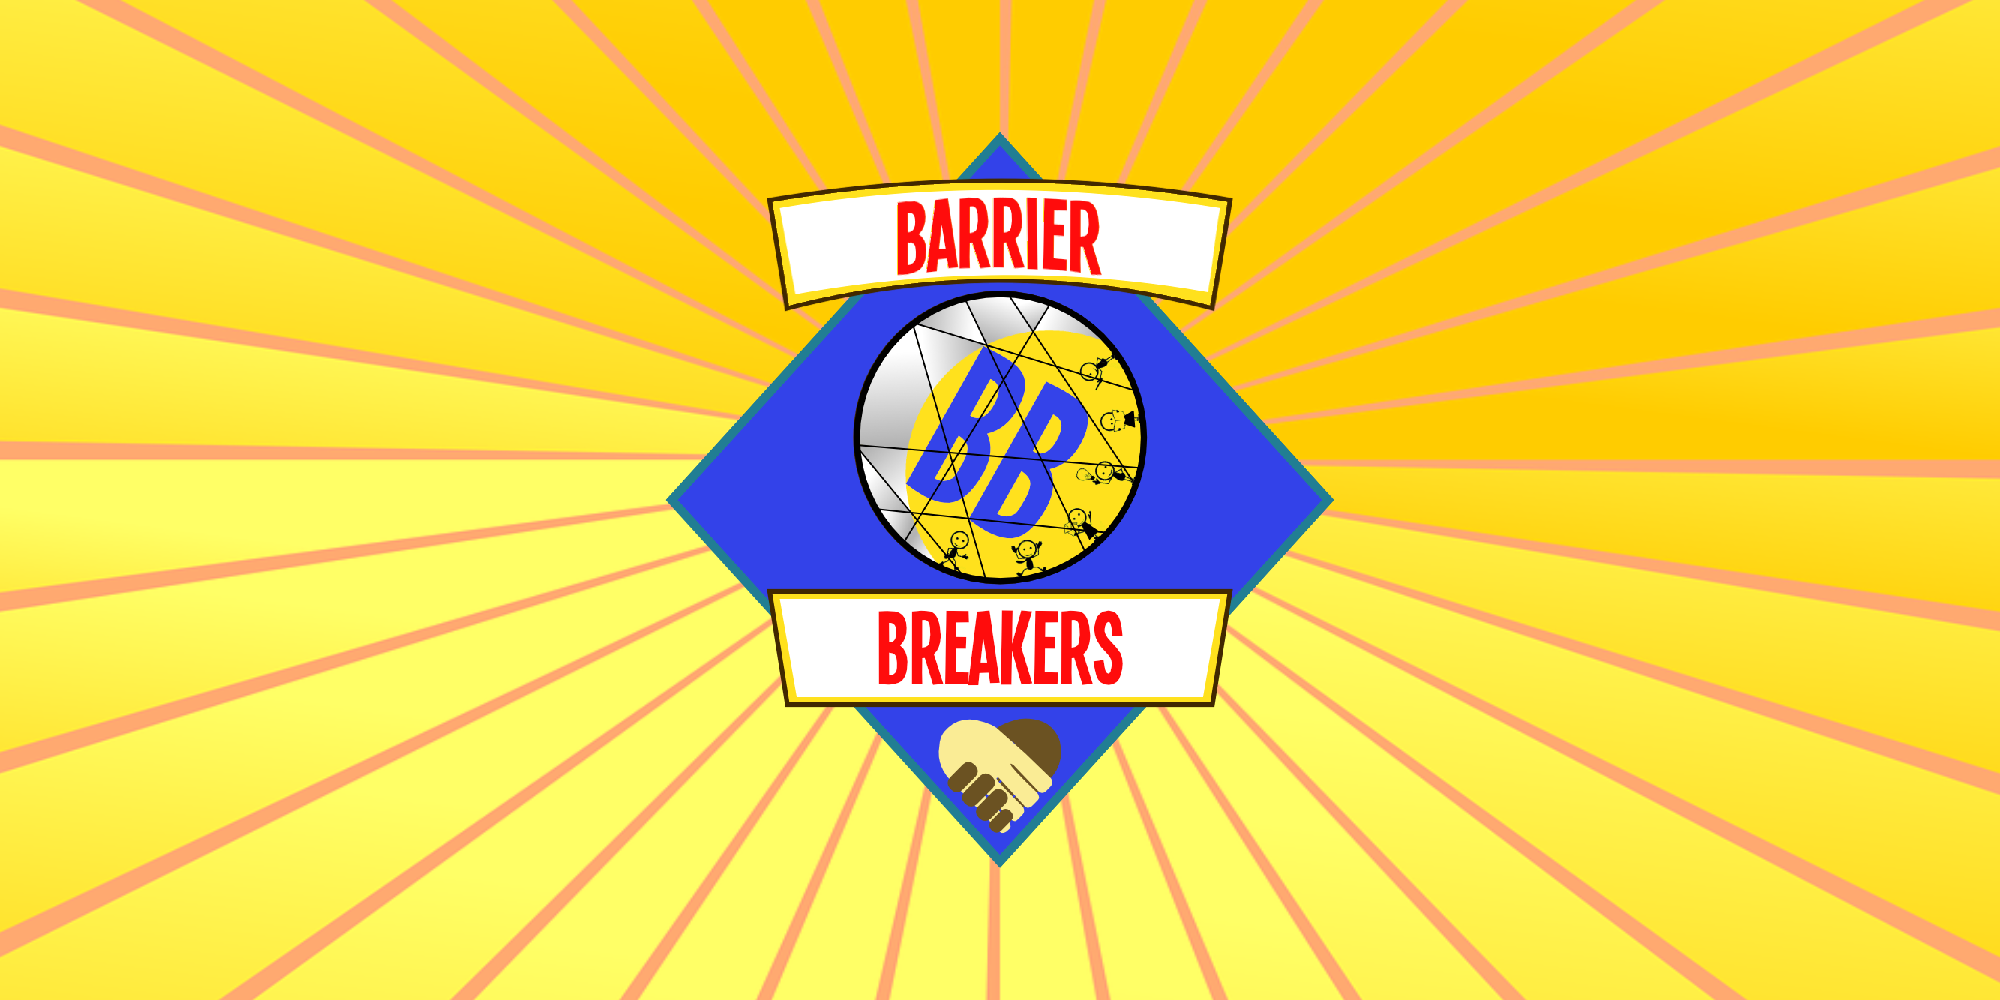 Barrier Breakers